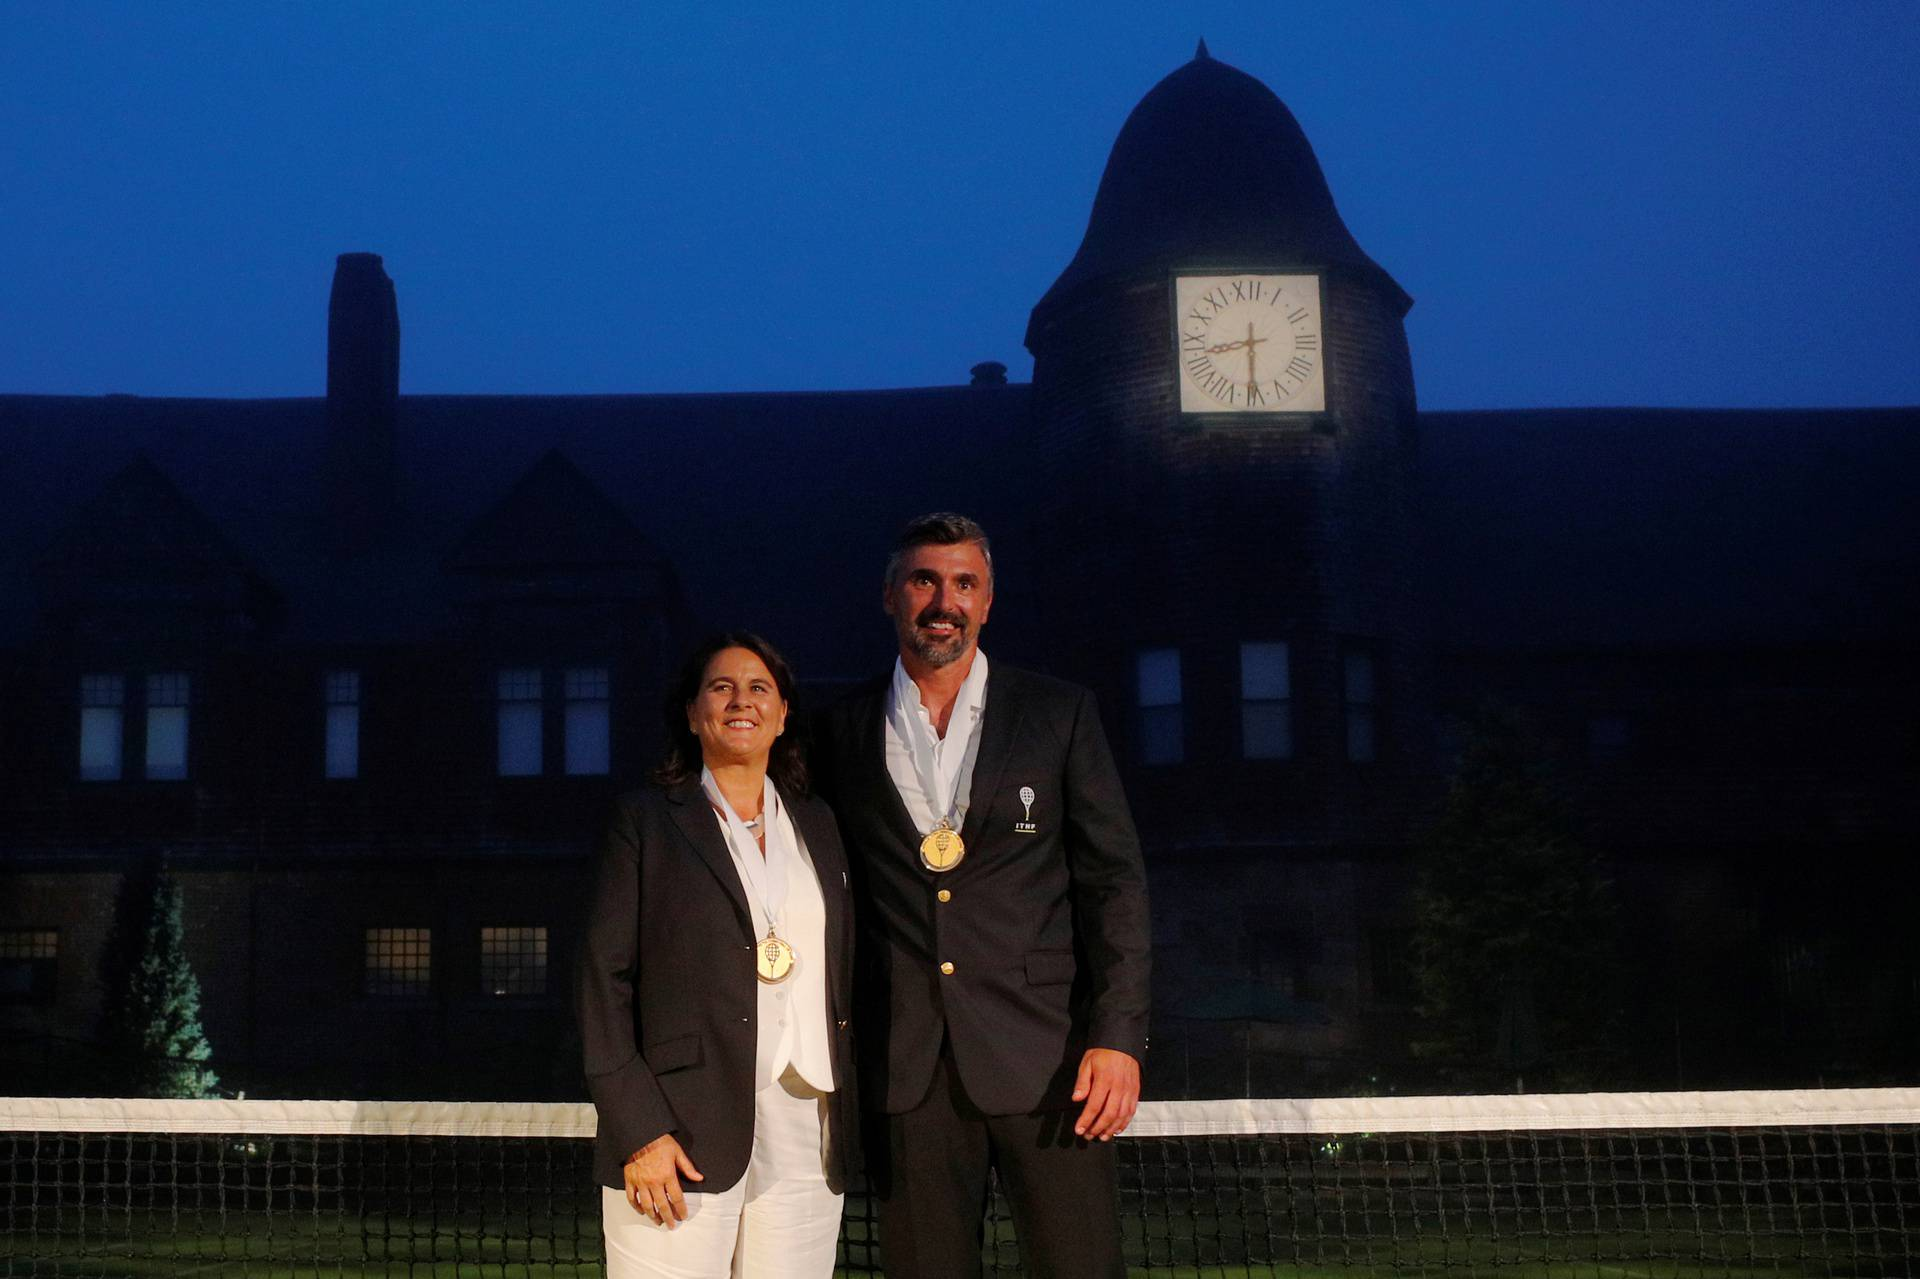 Former tennis players Conchita Martinez of Spain and Goran Ivanisevic of Croatia pose for photographs in Newport